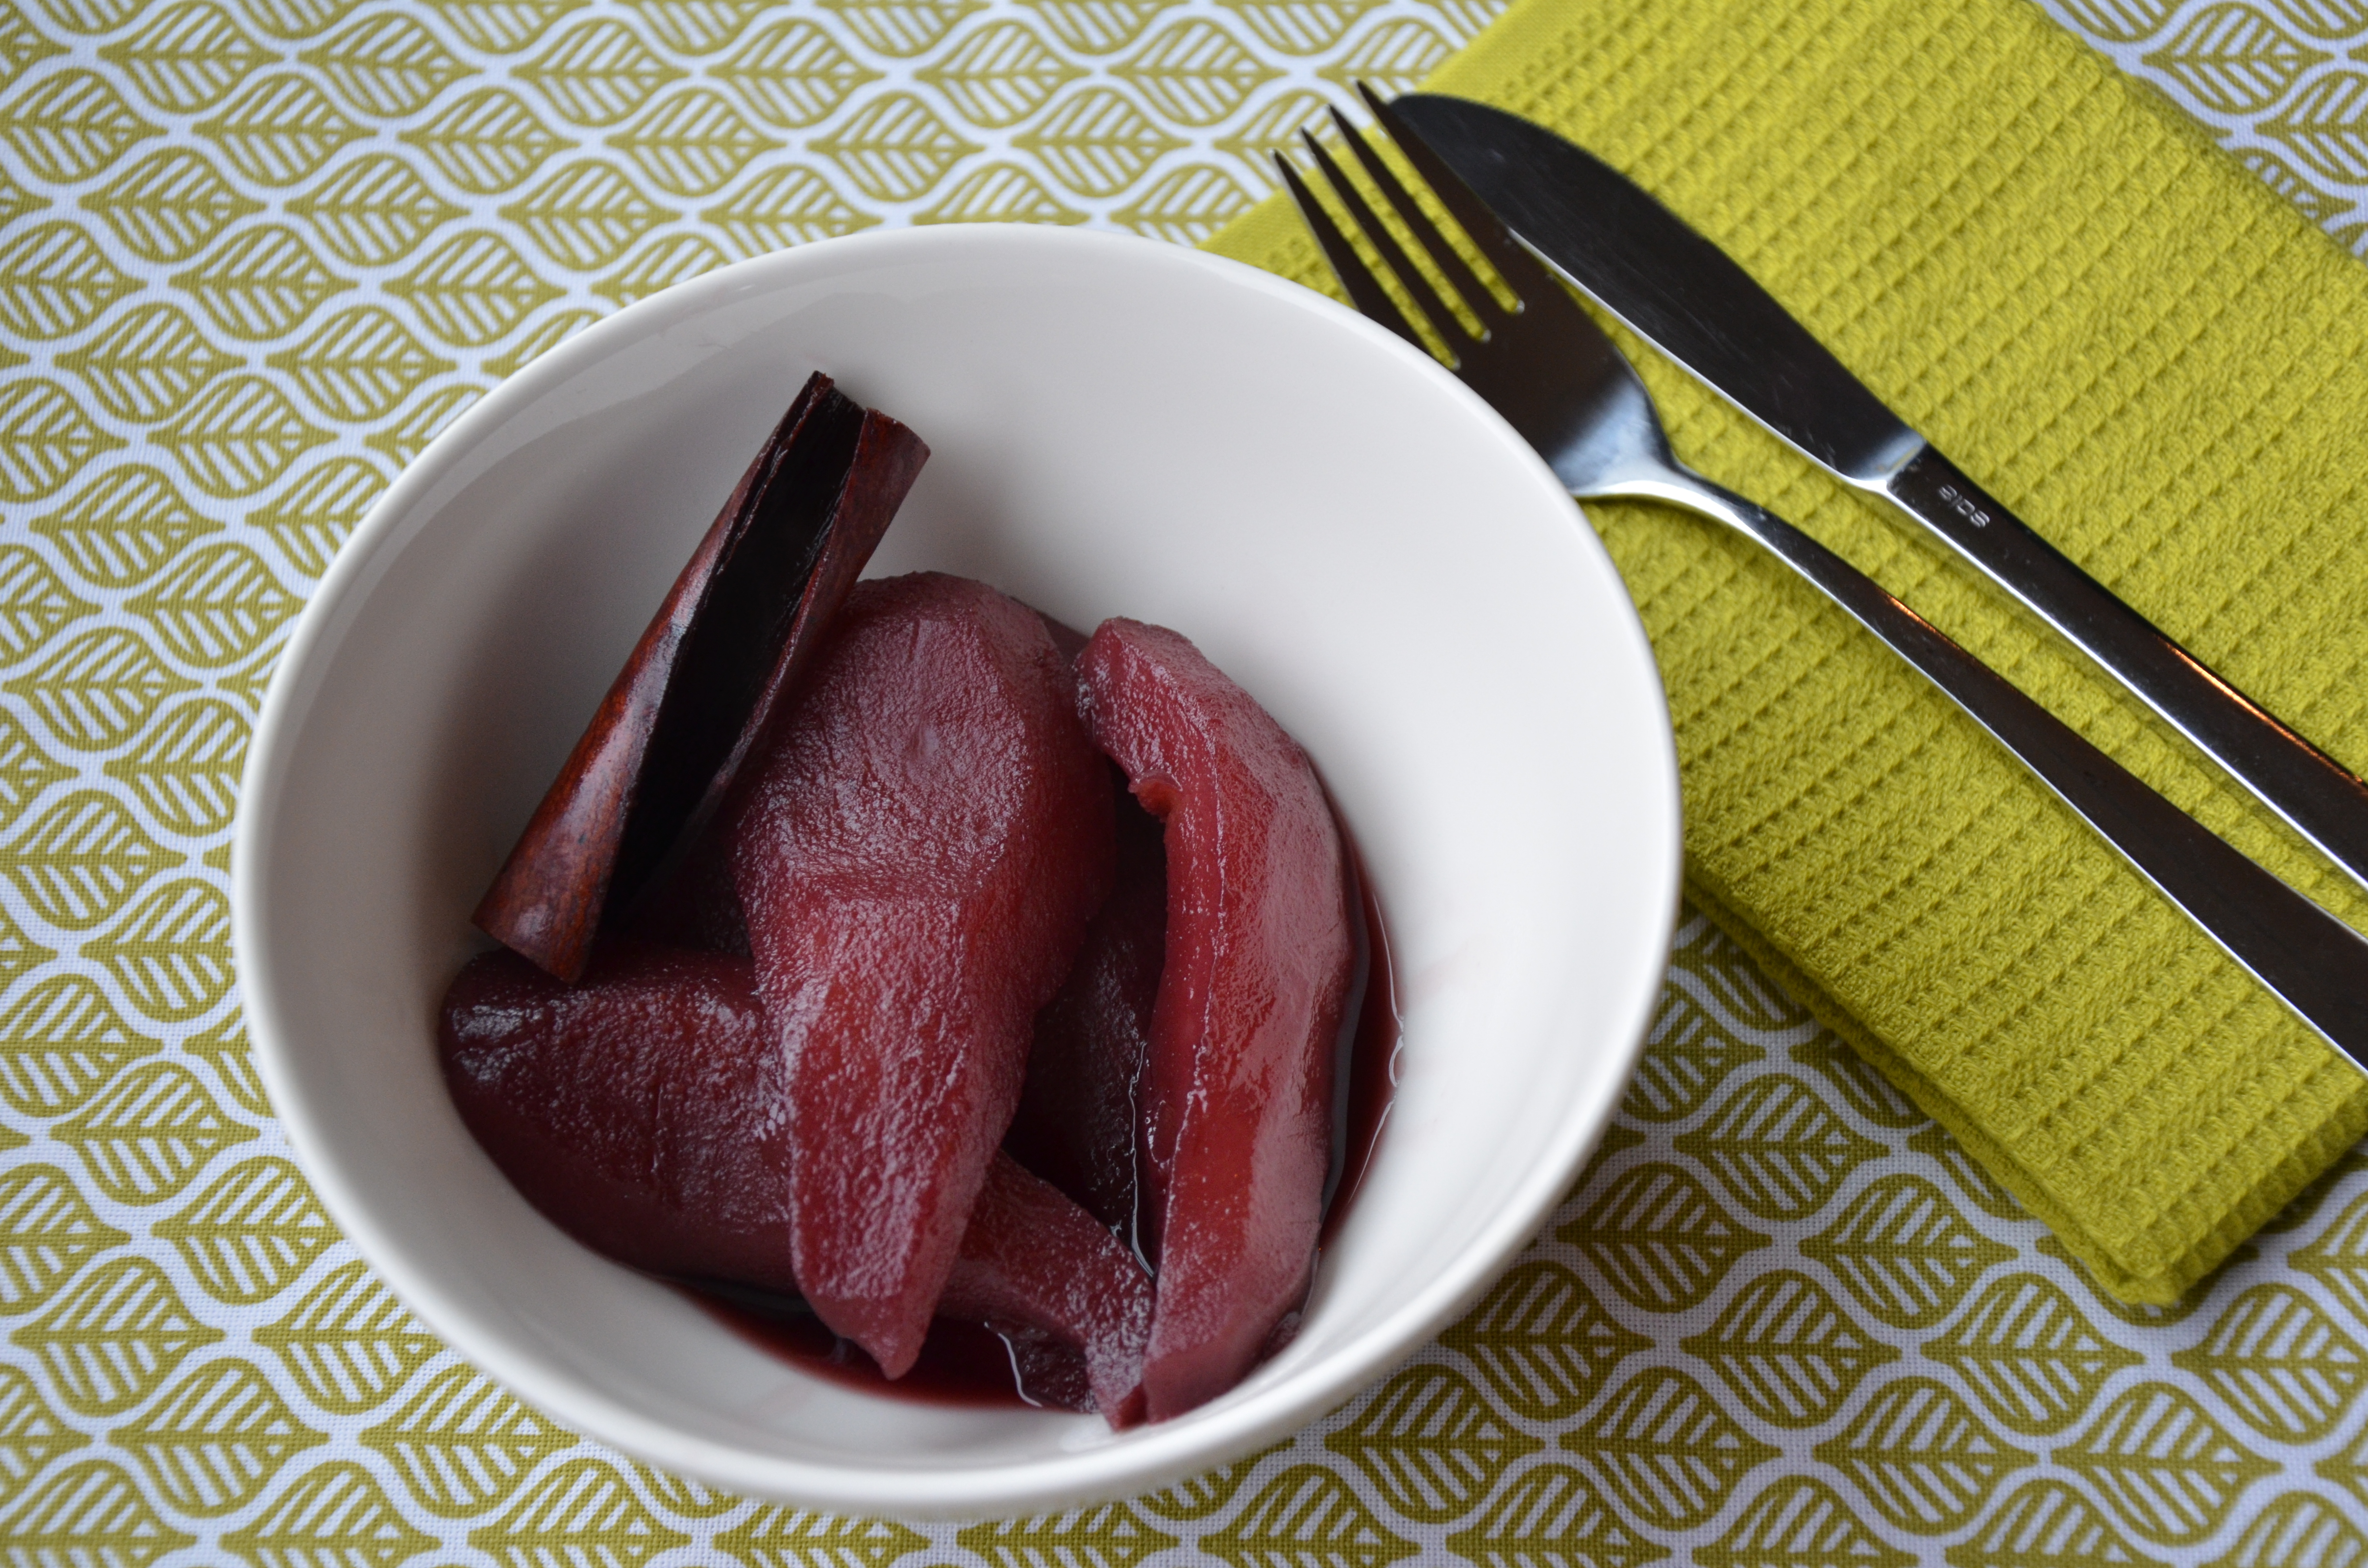 Stoofperen met Rode Wijn (Red Wine-Poached Pears)